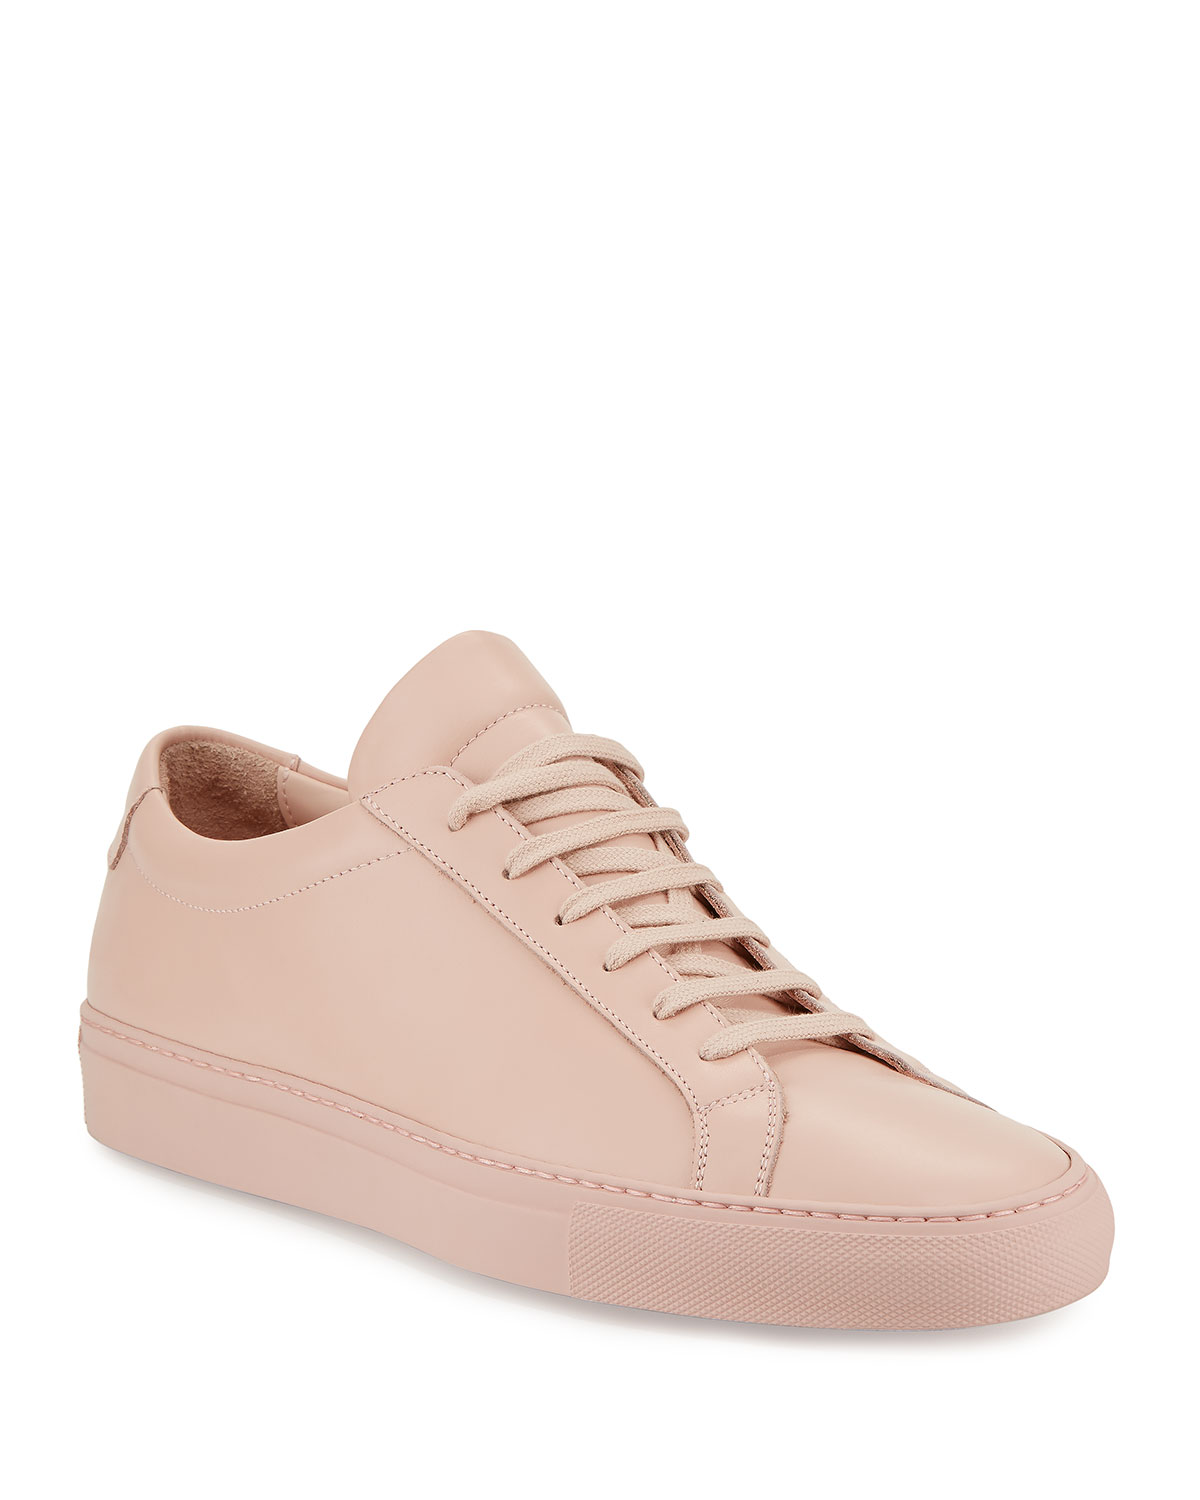 76e1a4cfbb28 Common Projects Men s Achilles Leather Low-Top Sneakers